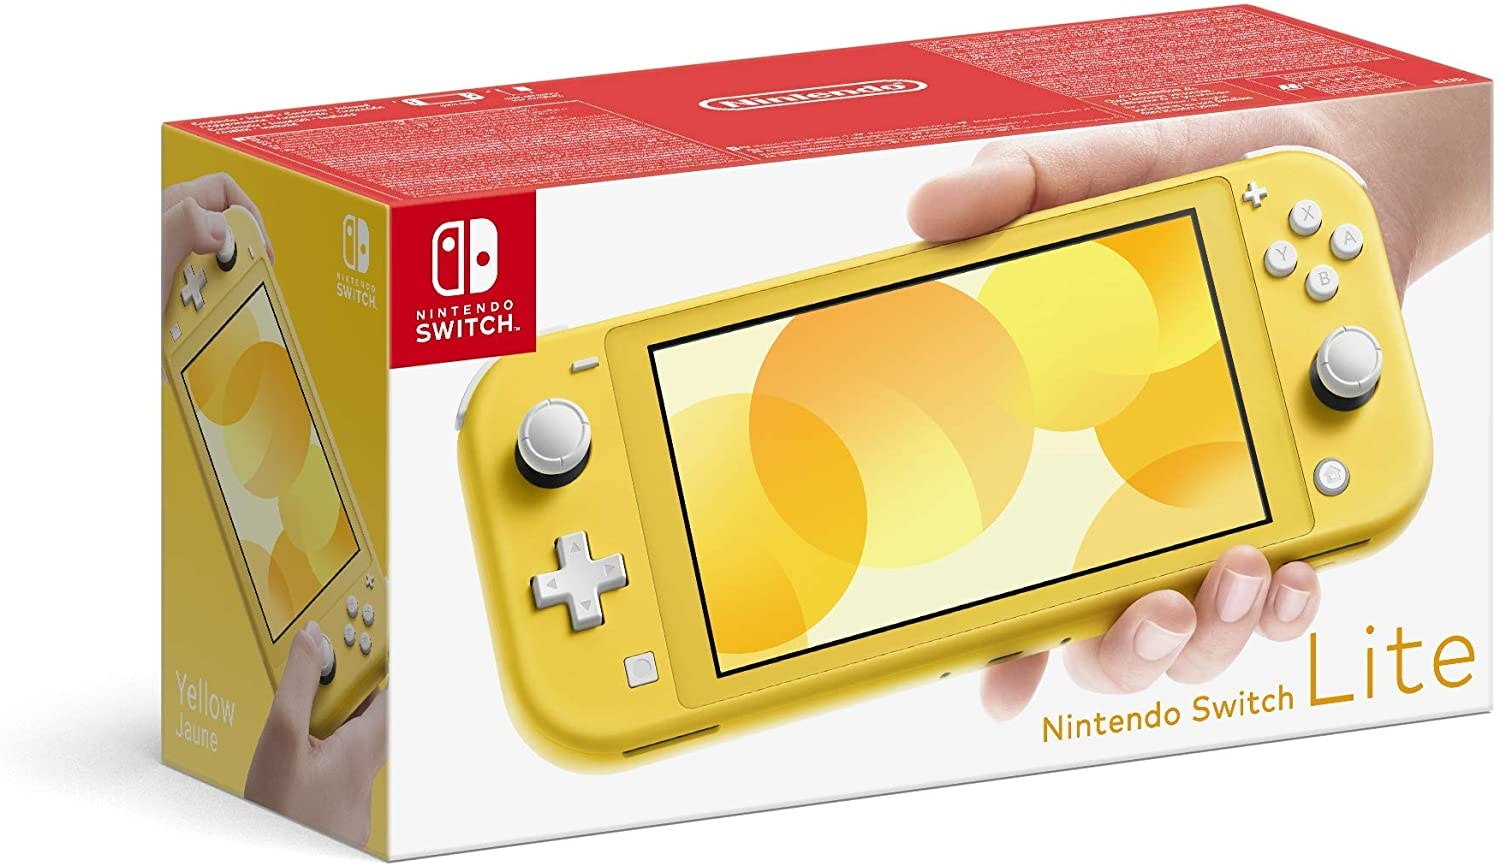 Nintendo Switch Lite 32GB System Handheld Video Game Console Device Tablet AC TESTED WORKING Light Yellow - 1